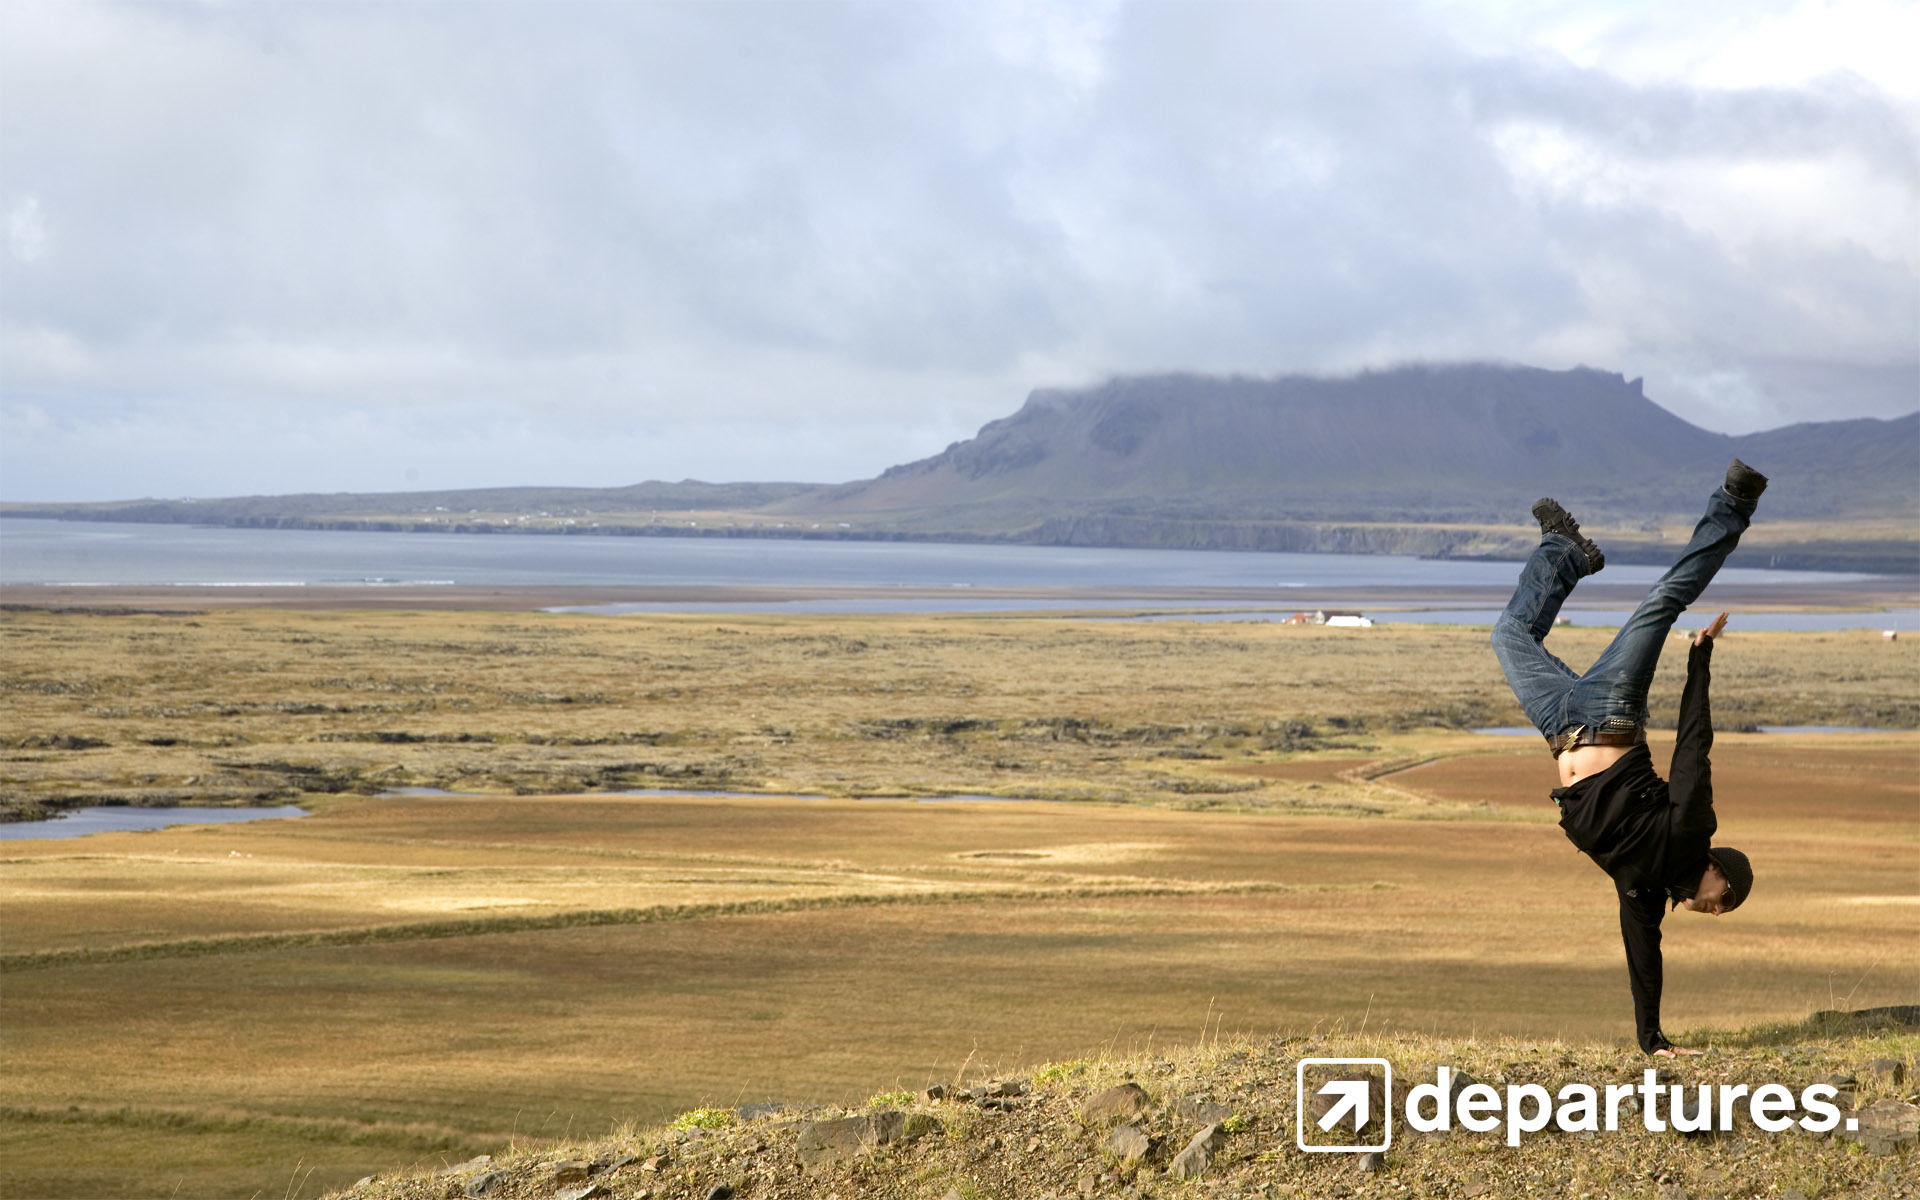 iceland handstand World HD Wallpaper